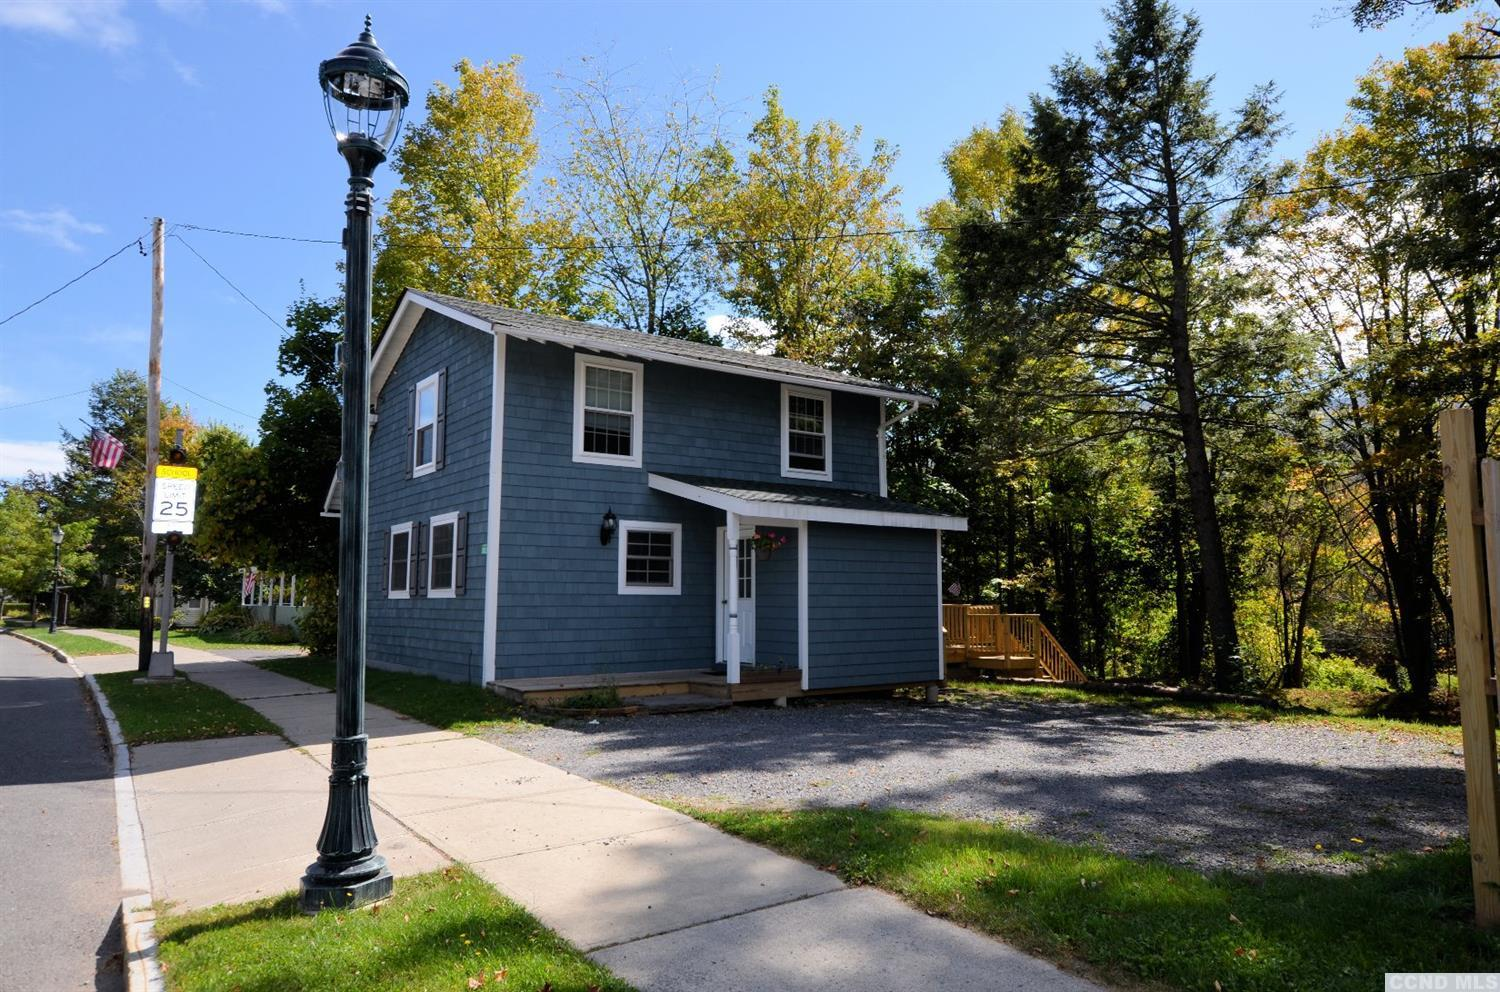 $160,000 - 7823 Main St, Hunter, NY 1244